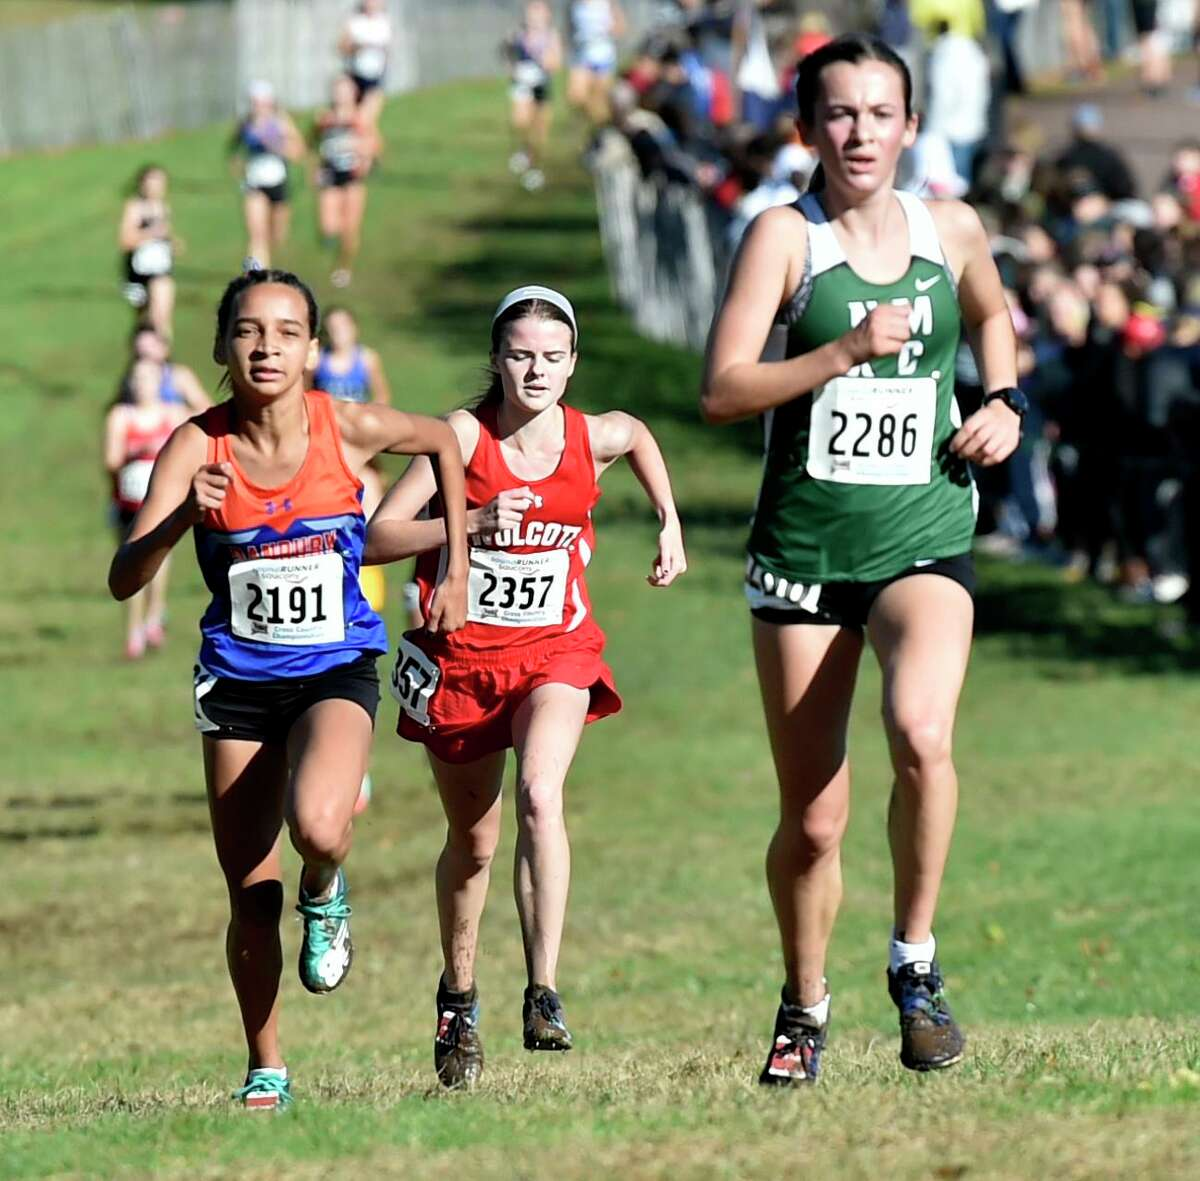 Manchester, Connecticut -Wednesday, November 1, 2019: The CIAC Girls Cross Country Open Championship Friday at Wickham Park in Manchester: 5th place finisher Daniella Grullon Pena of Danbury, left, Kathryn Rodrigues of Wolcot H.S., center, and Claire Daniels of New Milford H.S., right,